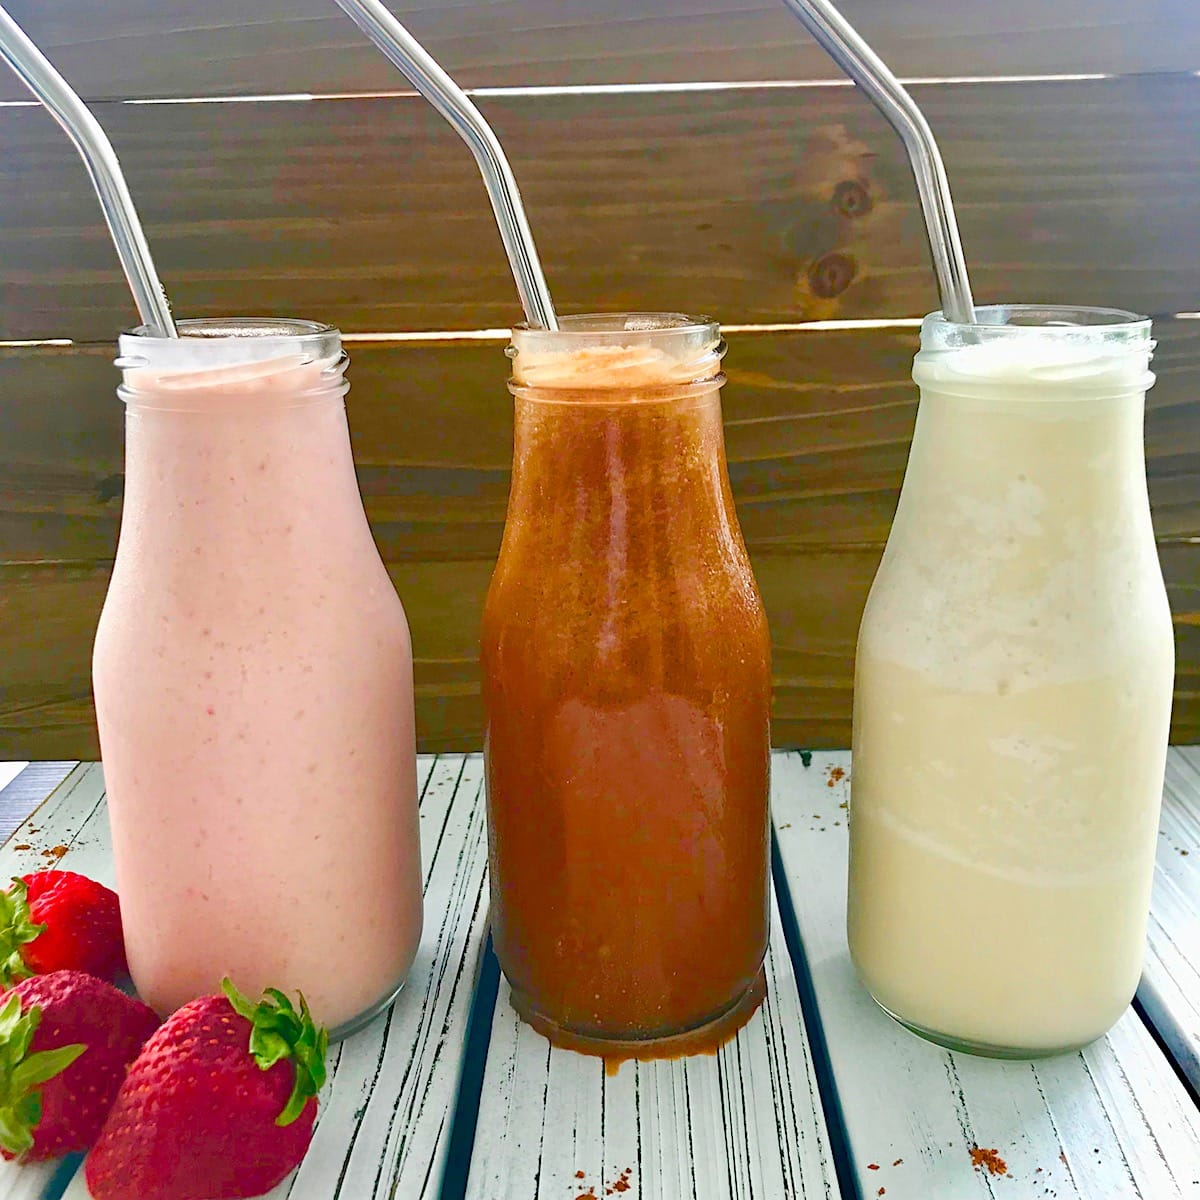 Three milkshakes in a row, starting with strawberry on the left, followed by chocolate and vanilla.